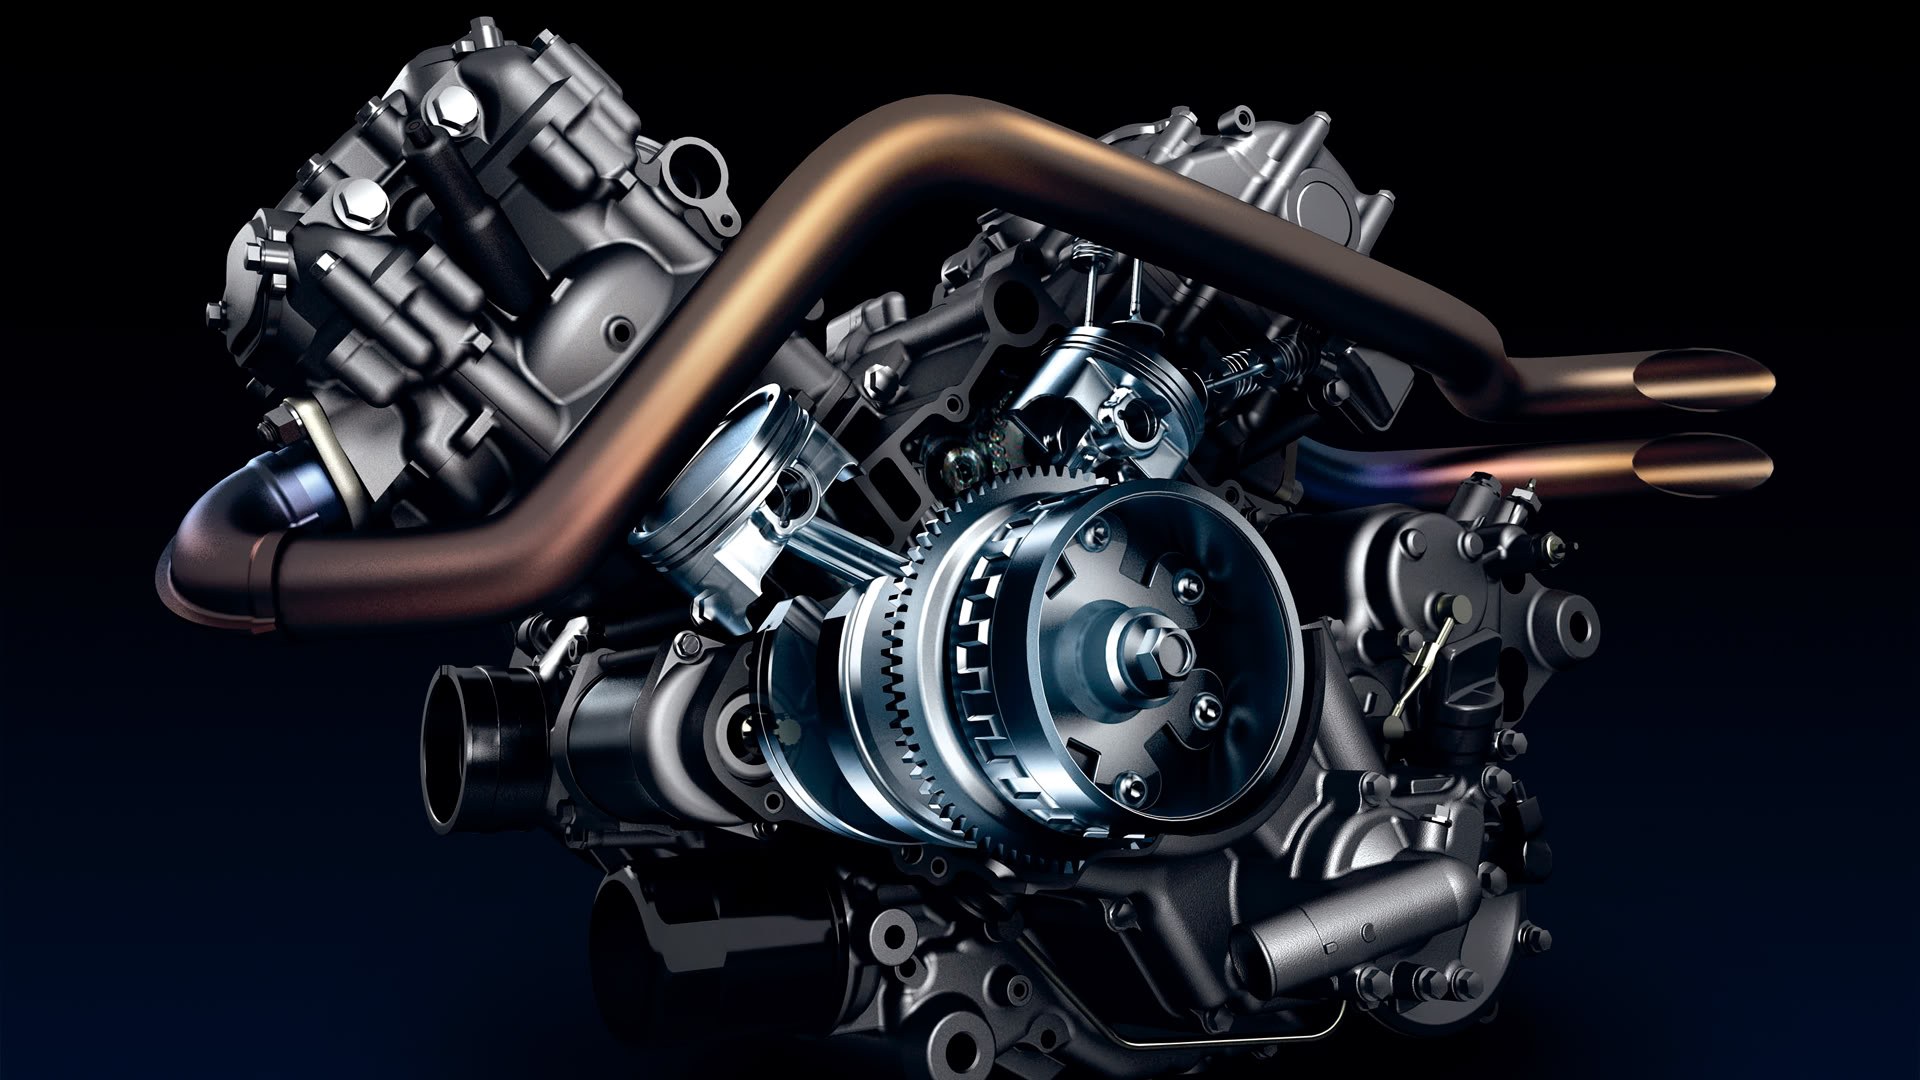 40 Hd Engine Wallpapers Engine Backgrounds Amp Engine Images For Desktop